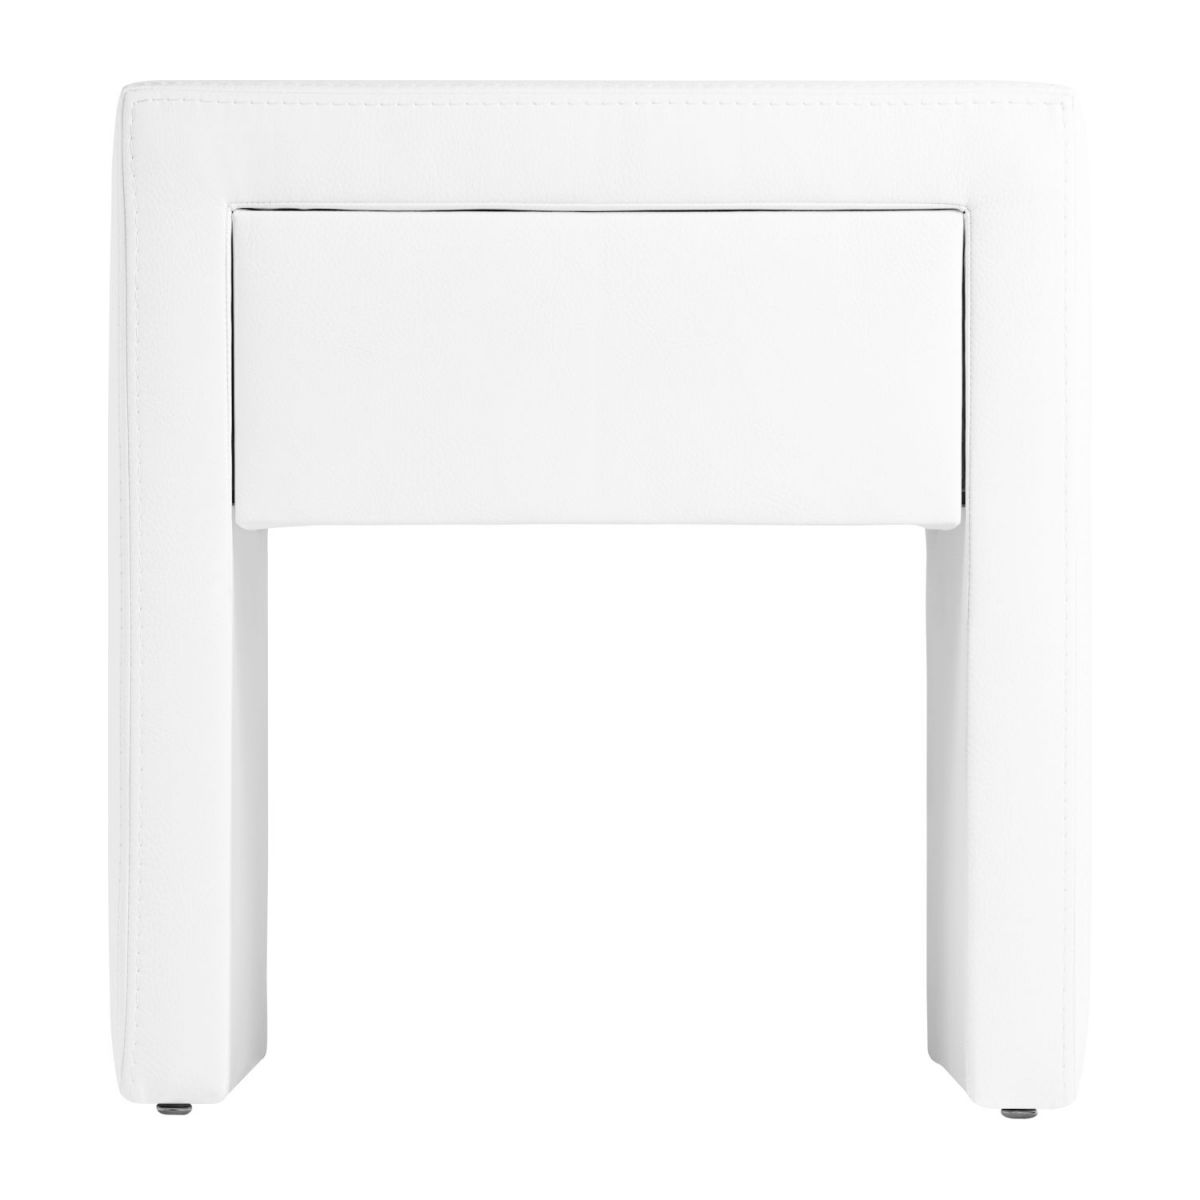 Table de chevet - Blanc n°4